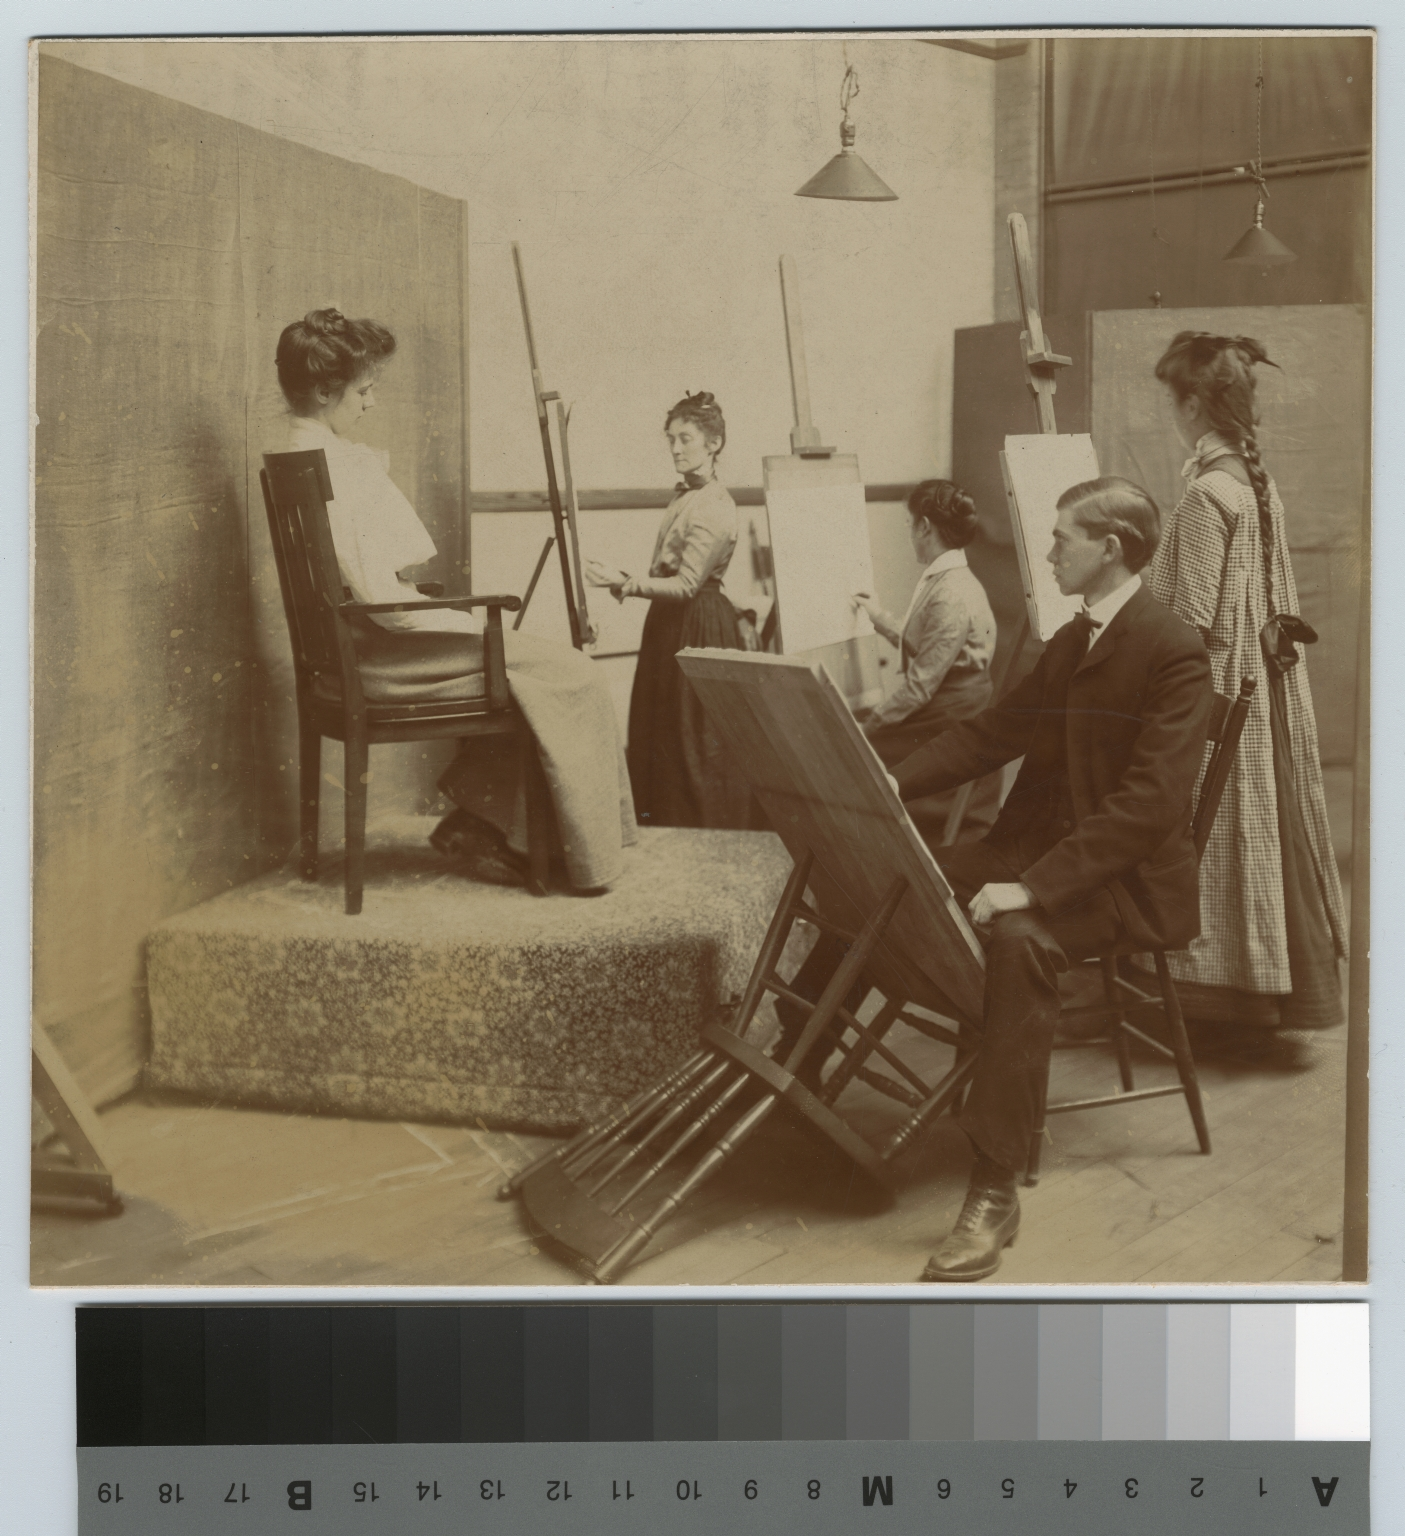 Academics, art and design, Rochester Athenaeum and Mechanics Institute life drawing class, 1891